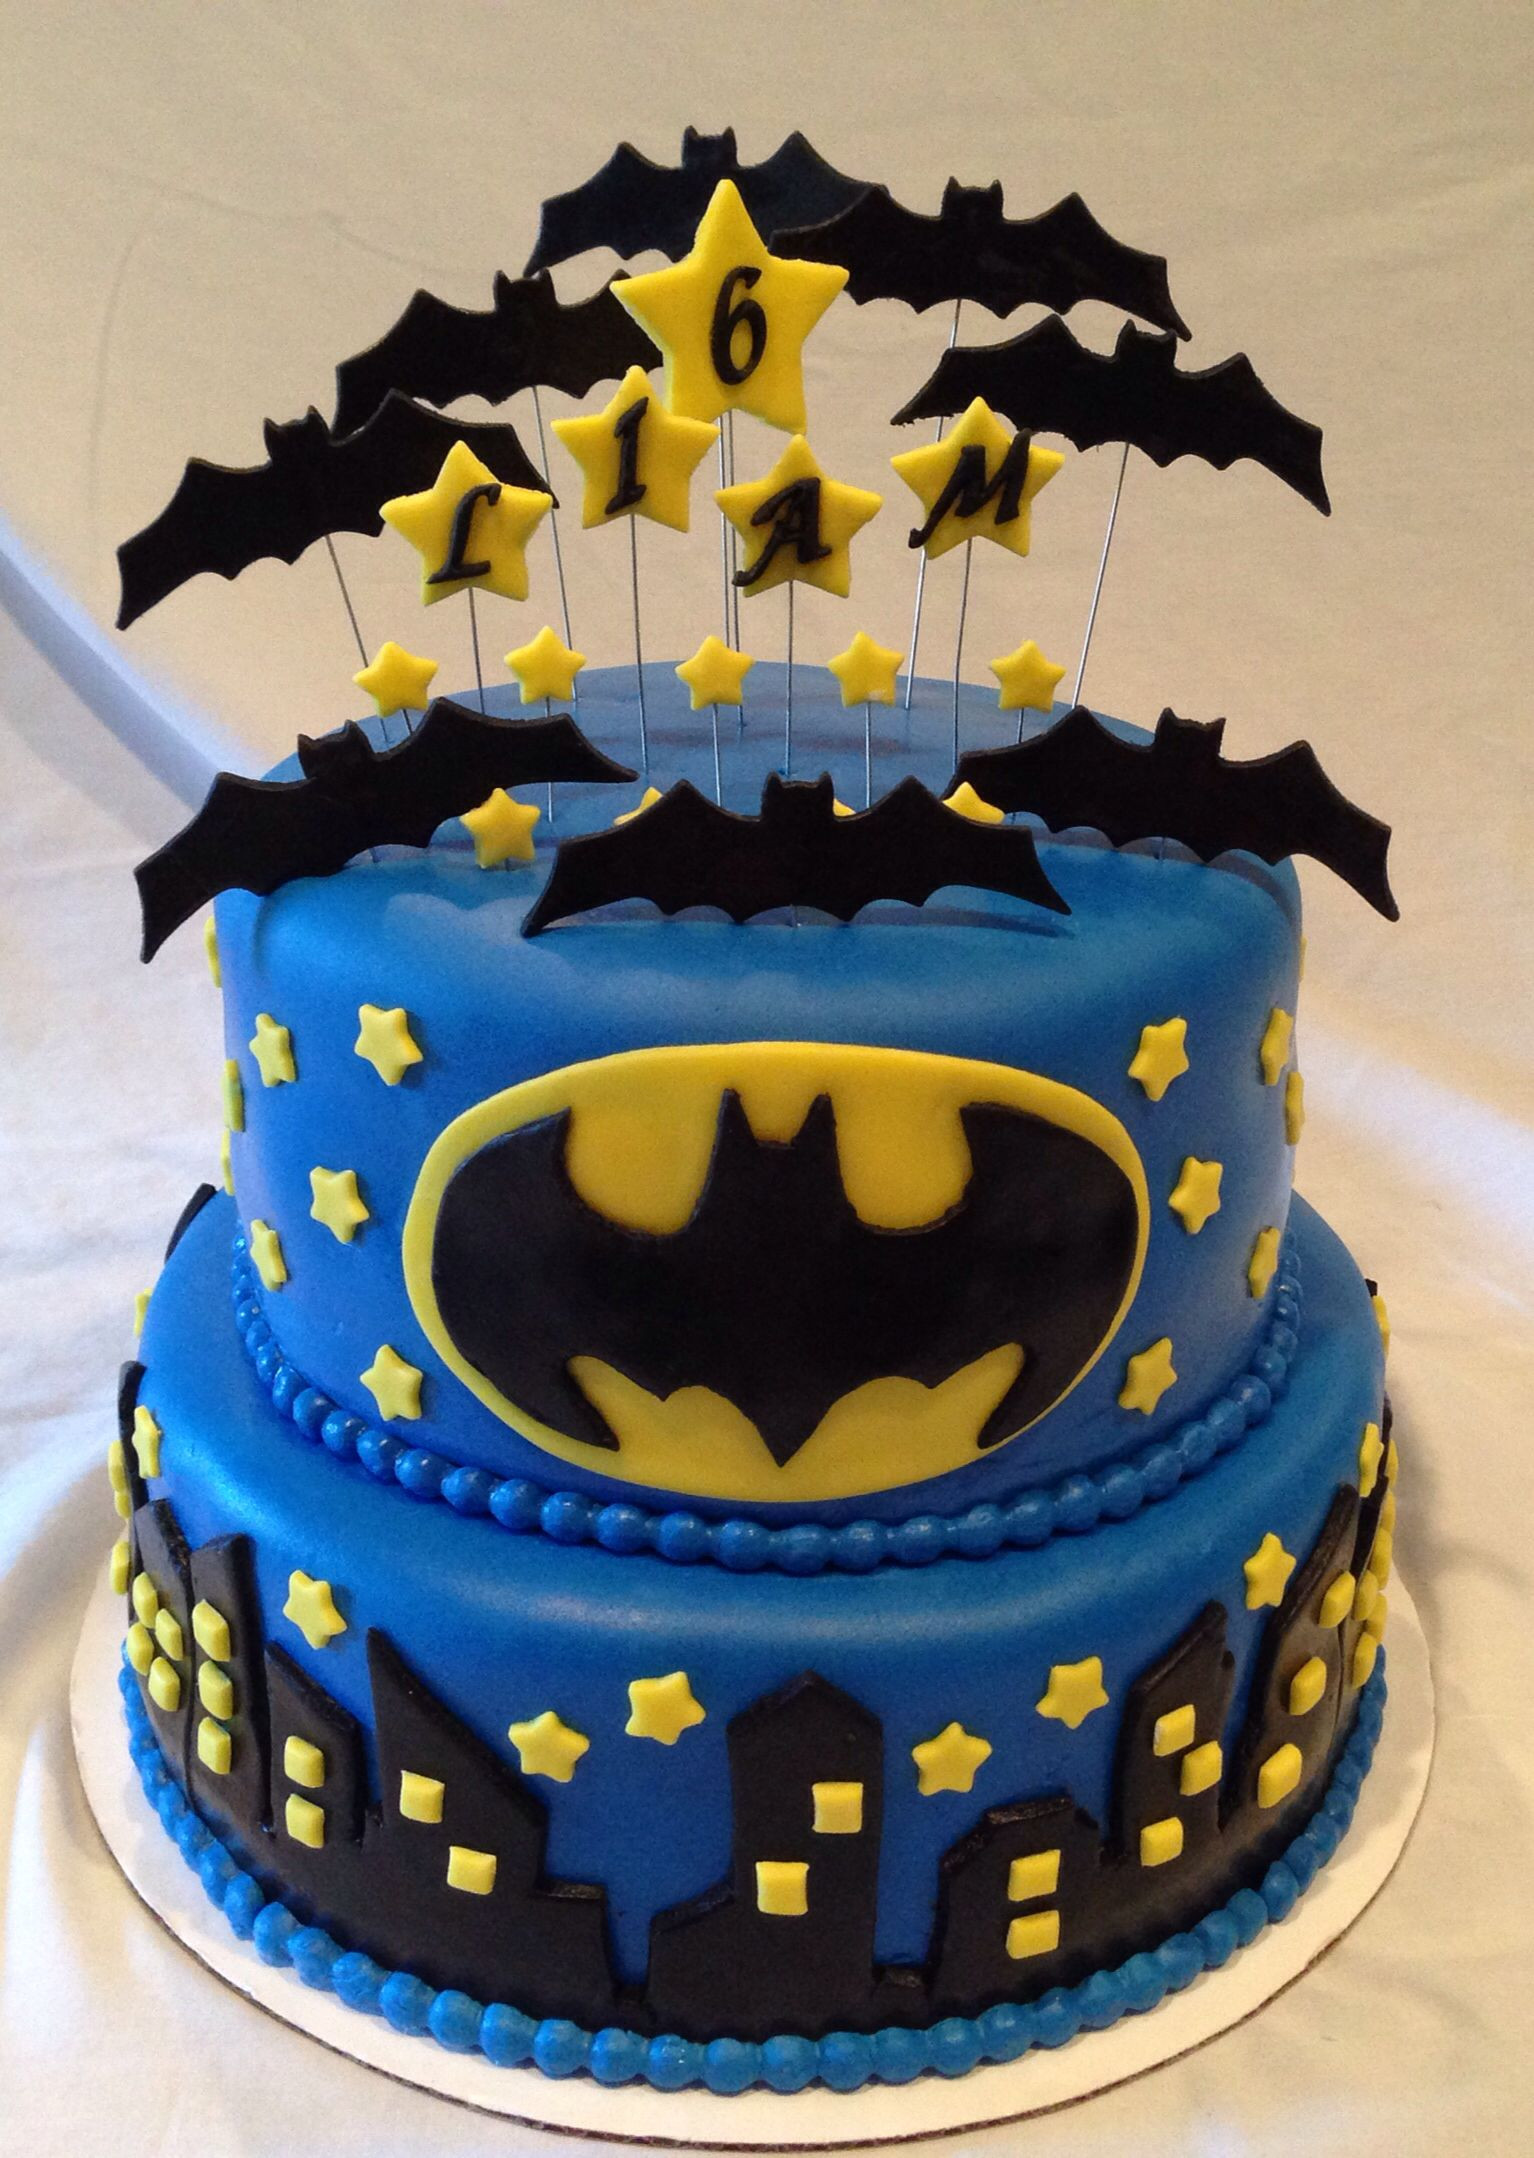 Best ideas about Batman Birthday Cake . Save or Pin Batman Cake Sweet Treats by Cherie Now.